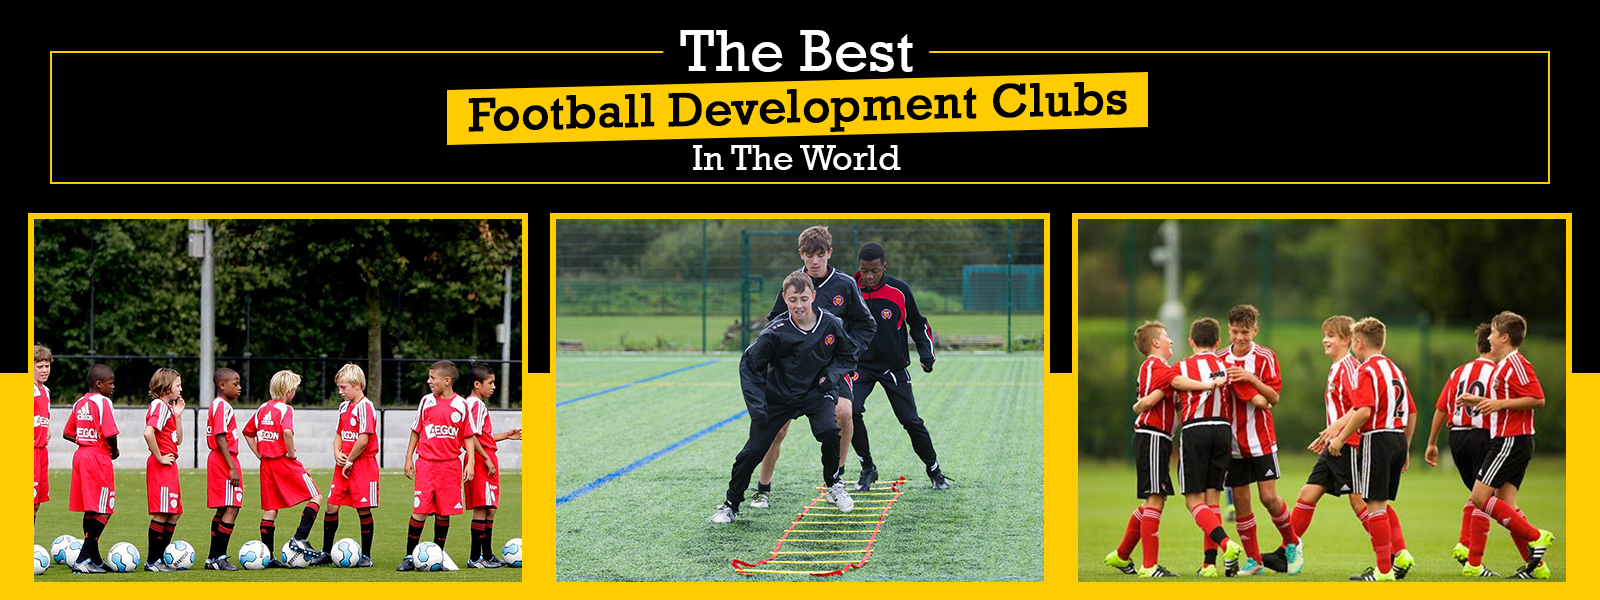 The Best Football Development Clubs In The World